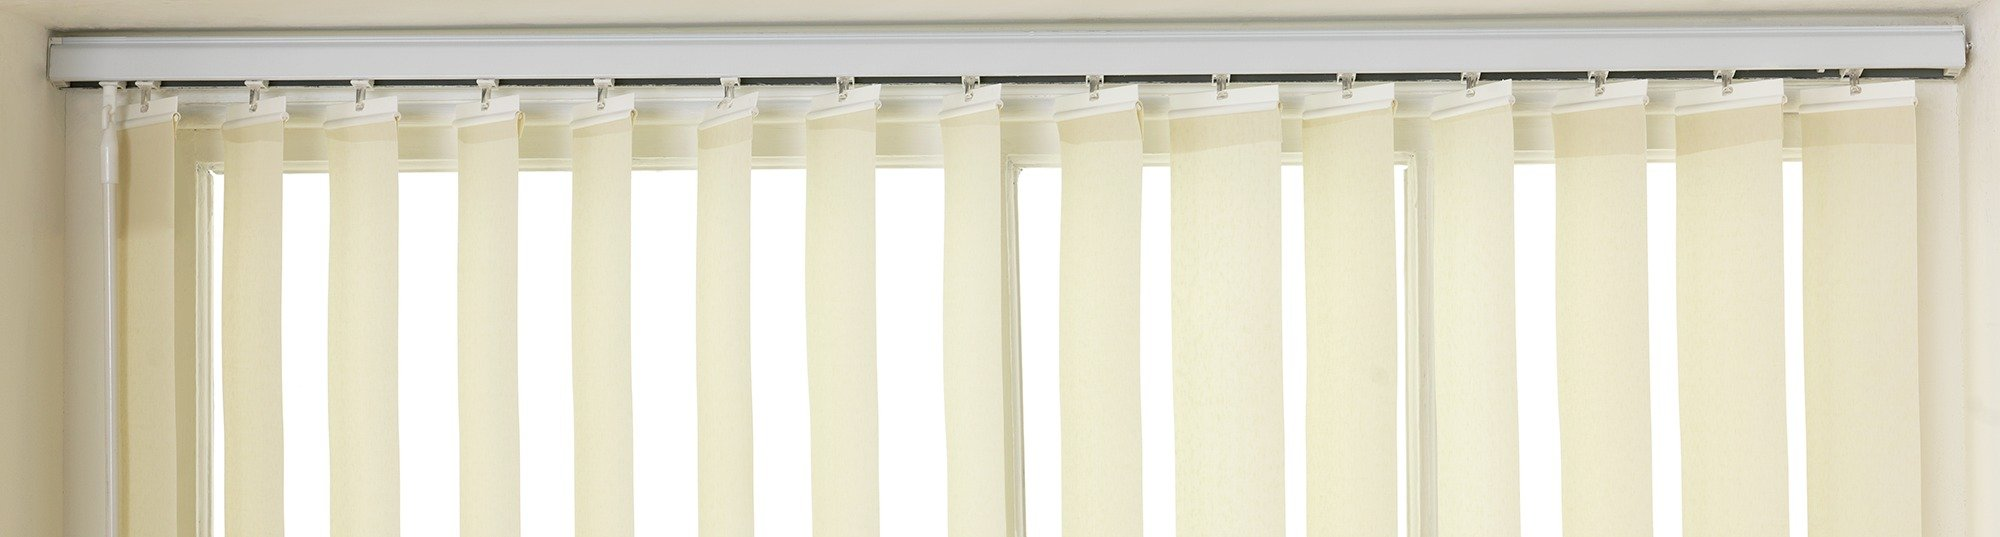 Argos Home Vertical Blind Headrail - 7ft